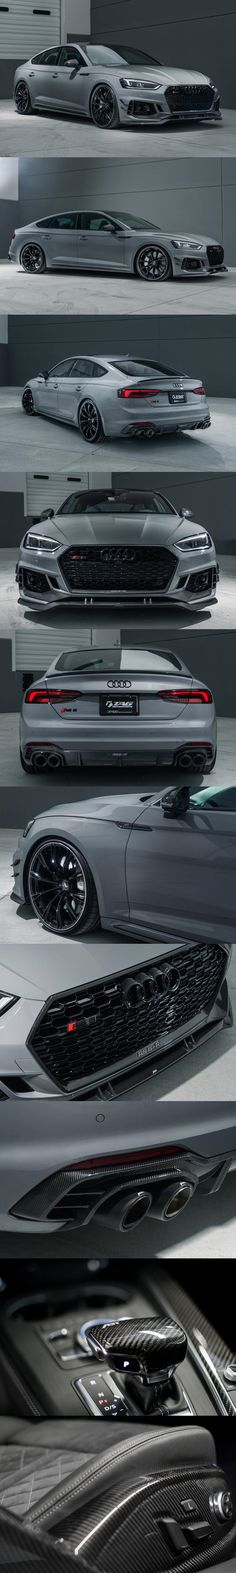 ABT Bringing Audi RS 5 Sportback To America. The Bava.- ABT Bringing Audi RS 5 Sportback To America. The Bavarian tuners also hav… ABT Bringing Audi RS 5 Sportback To America. The Bavarian tuners also have a thing for carbon fiber. Audi Rs5 Sportback, Audi R8 V10, Triumph Bonneville T100, Bmw I3, Nissan 350z, Fancy Cars, Cool Cars, Toyota Celica T23, Best American Cars